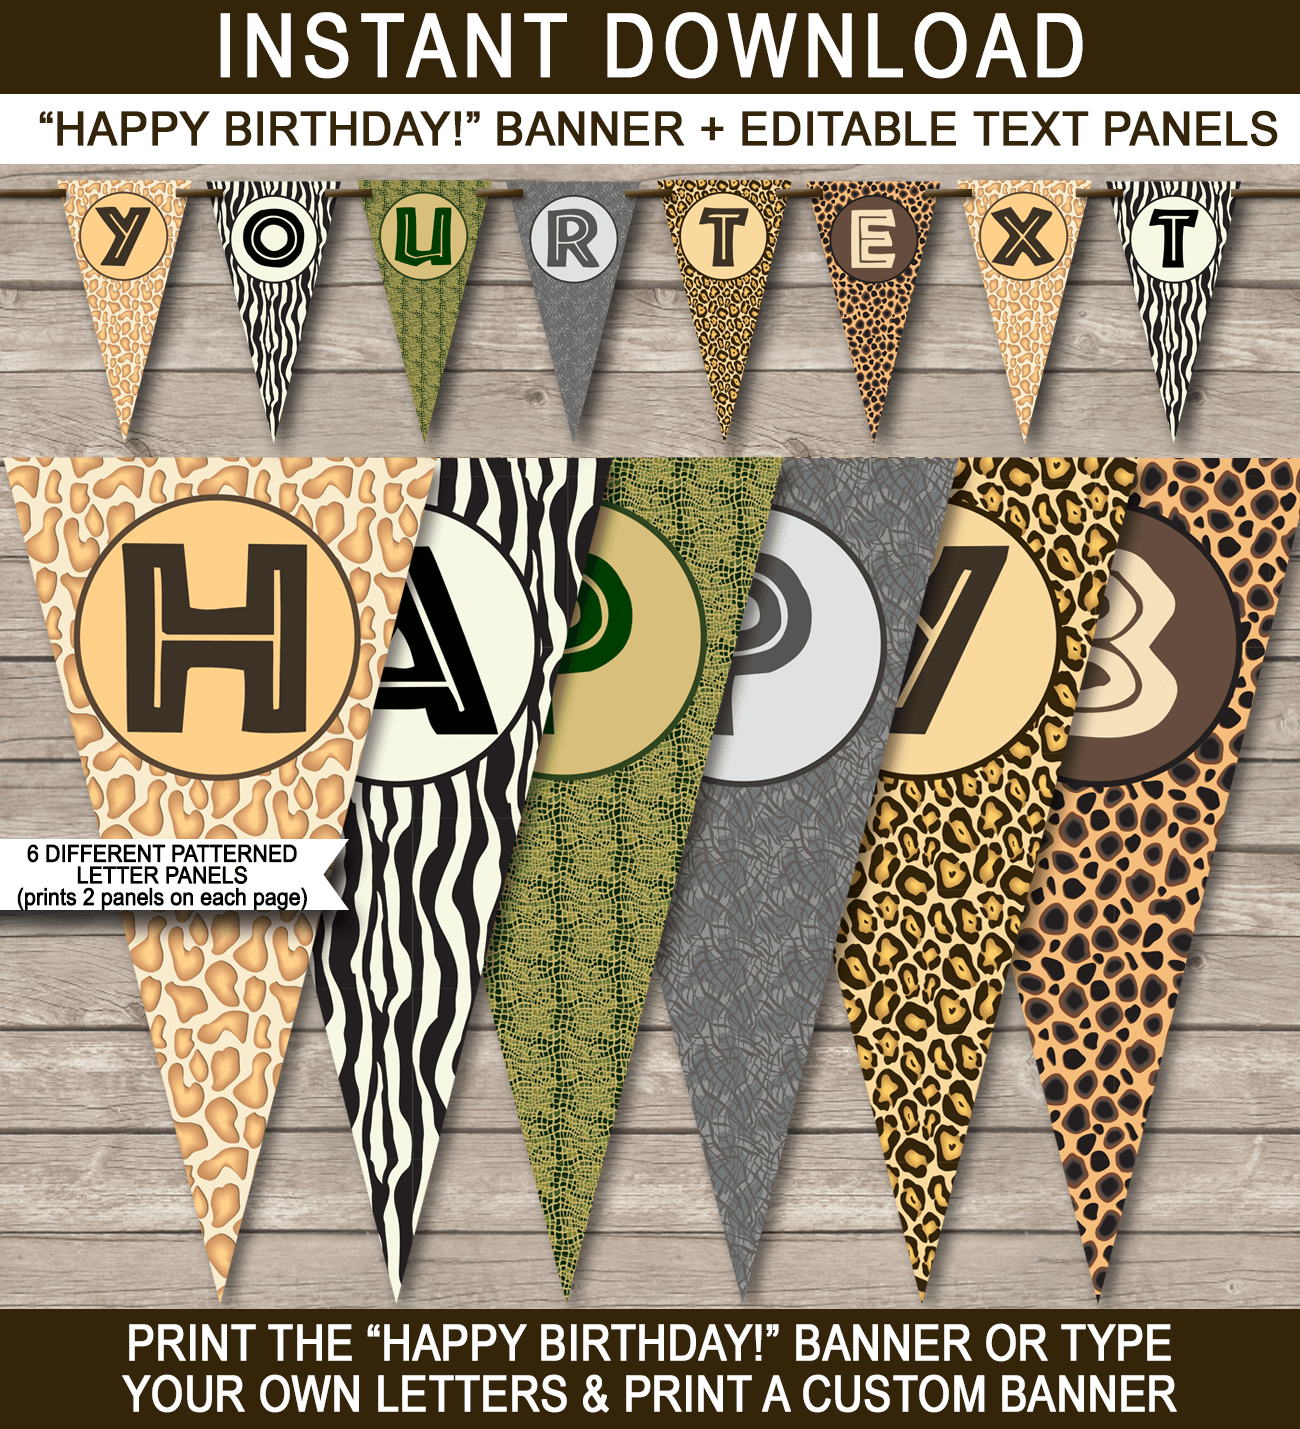 Zoo Or Safari Party Banner Template Bunting Hy Birthday Editable And Printable Diy Instant 4 50 Via